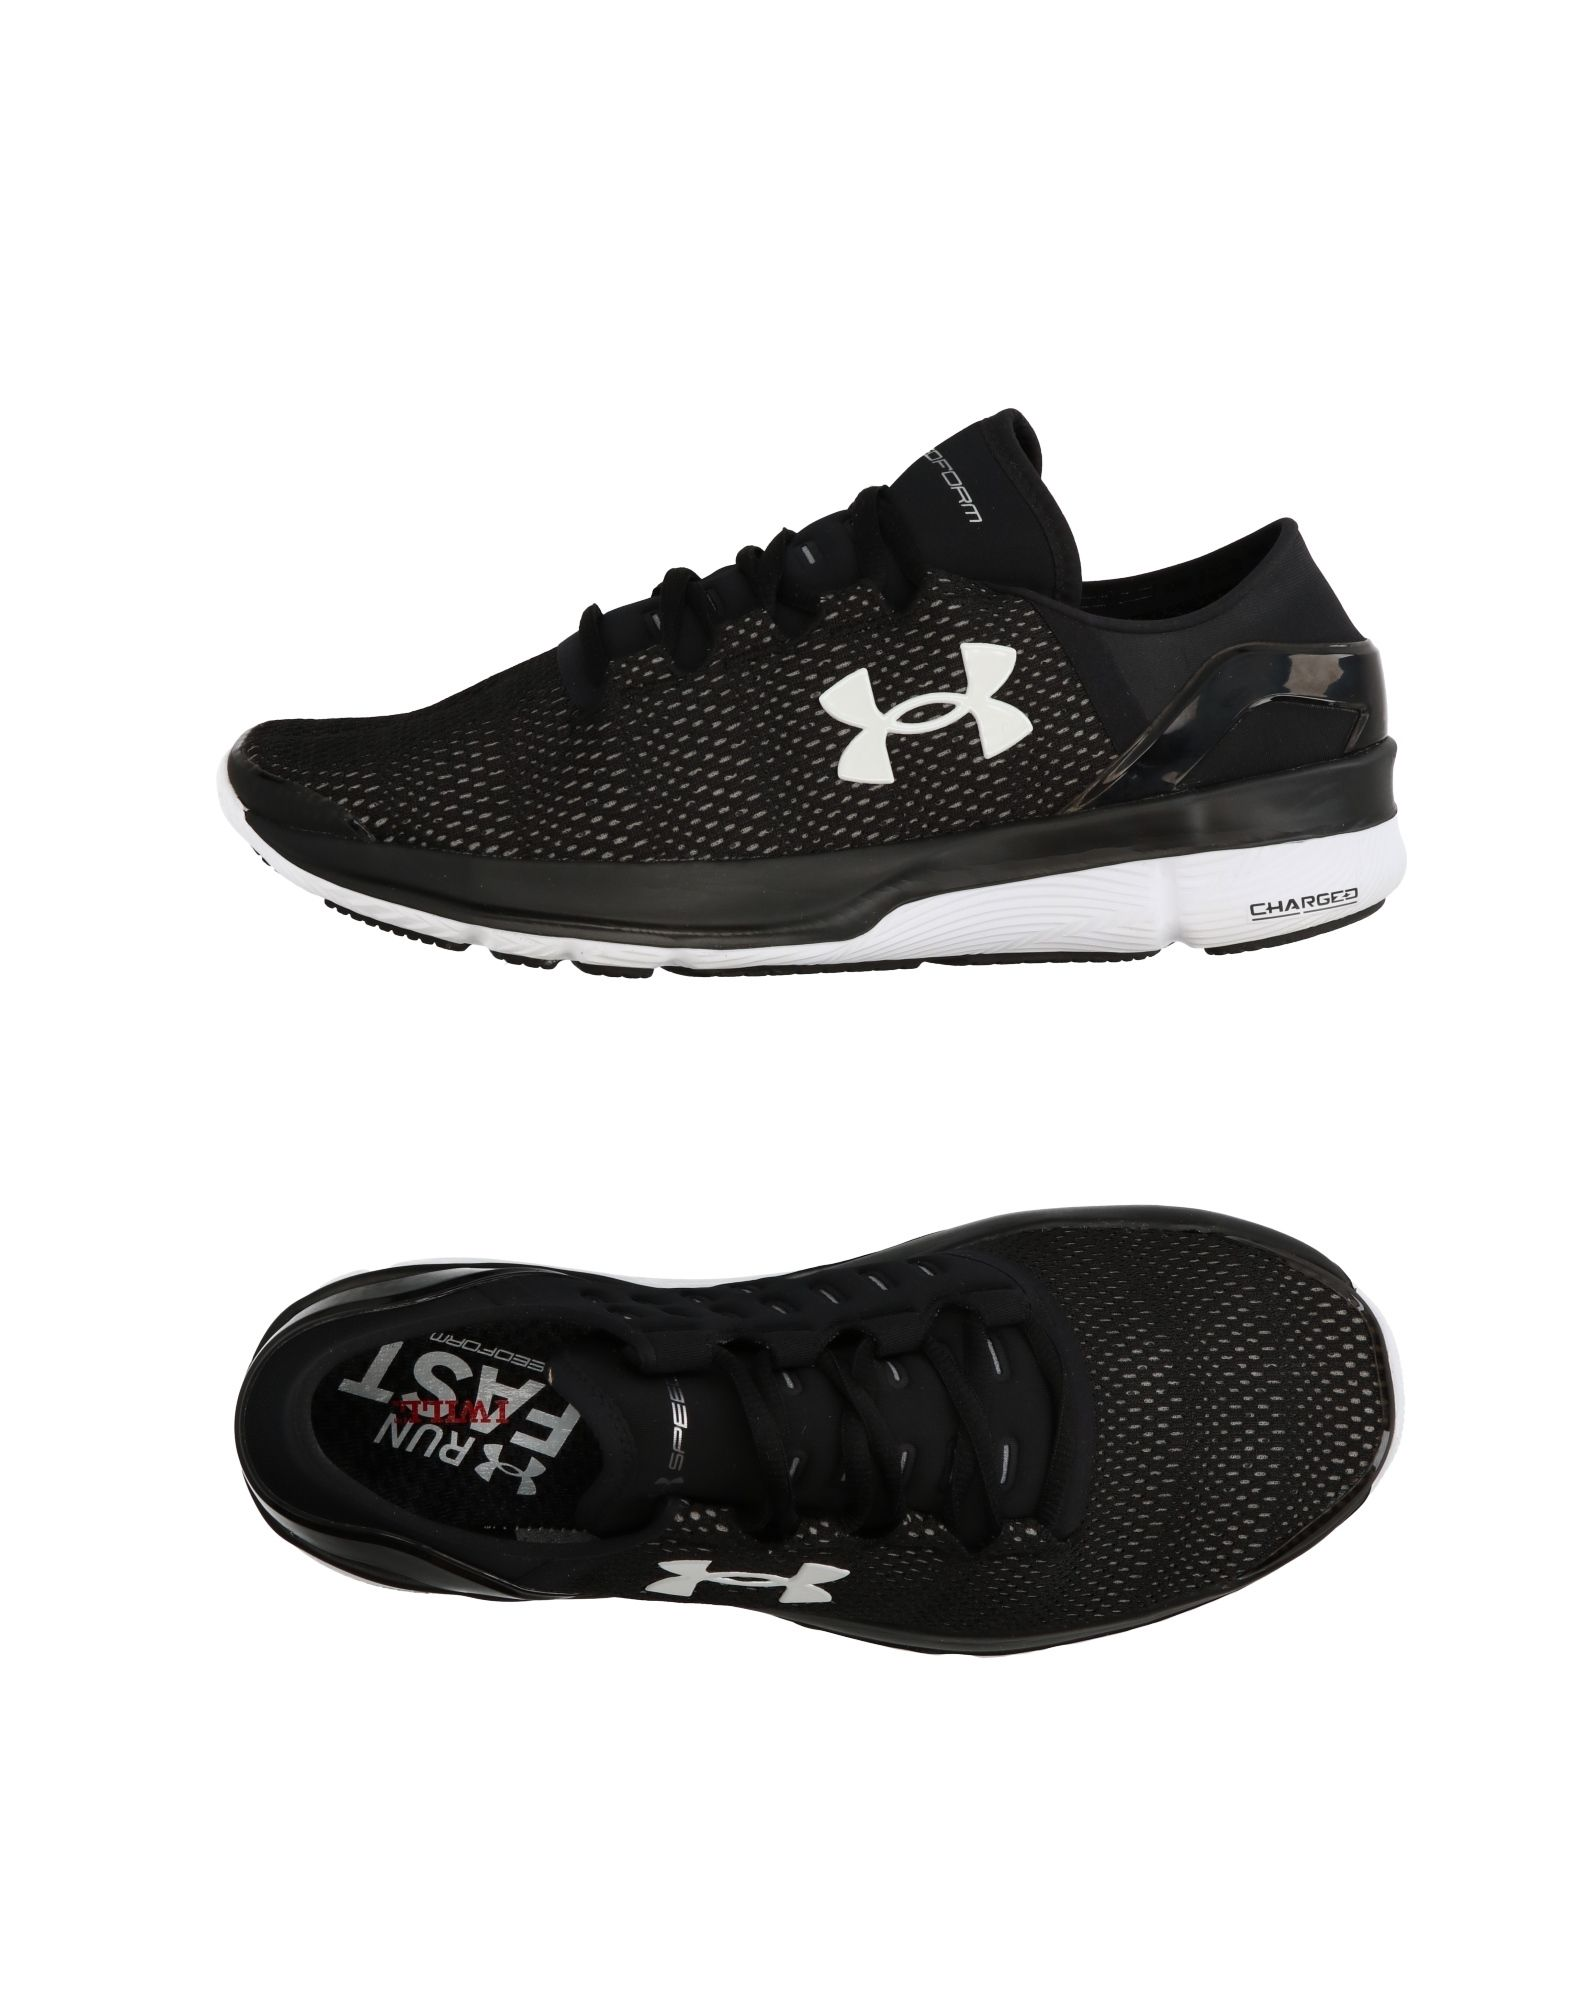 Rabatt echte Schuhe Under Armour Sneakers Herren  11263787JS